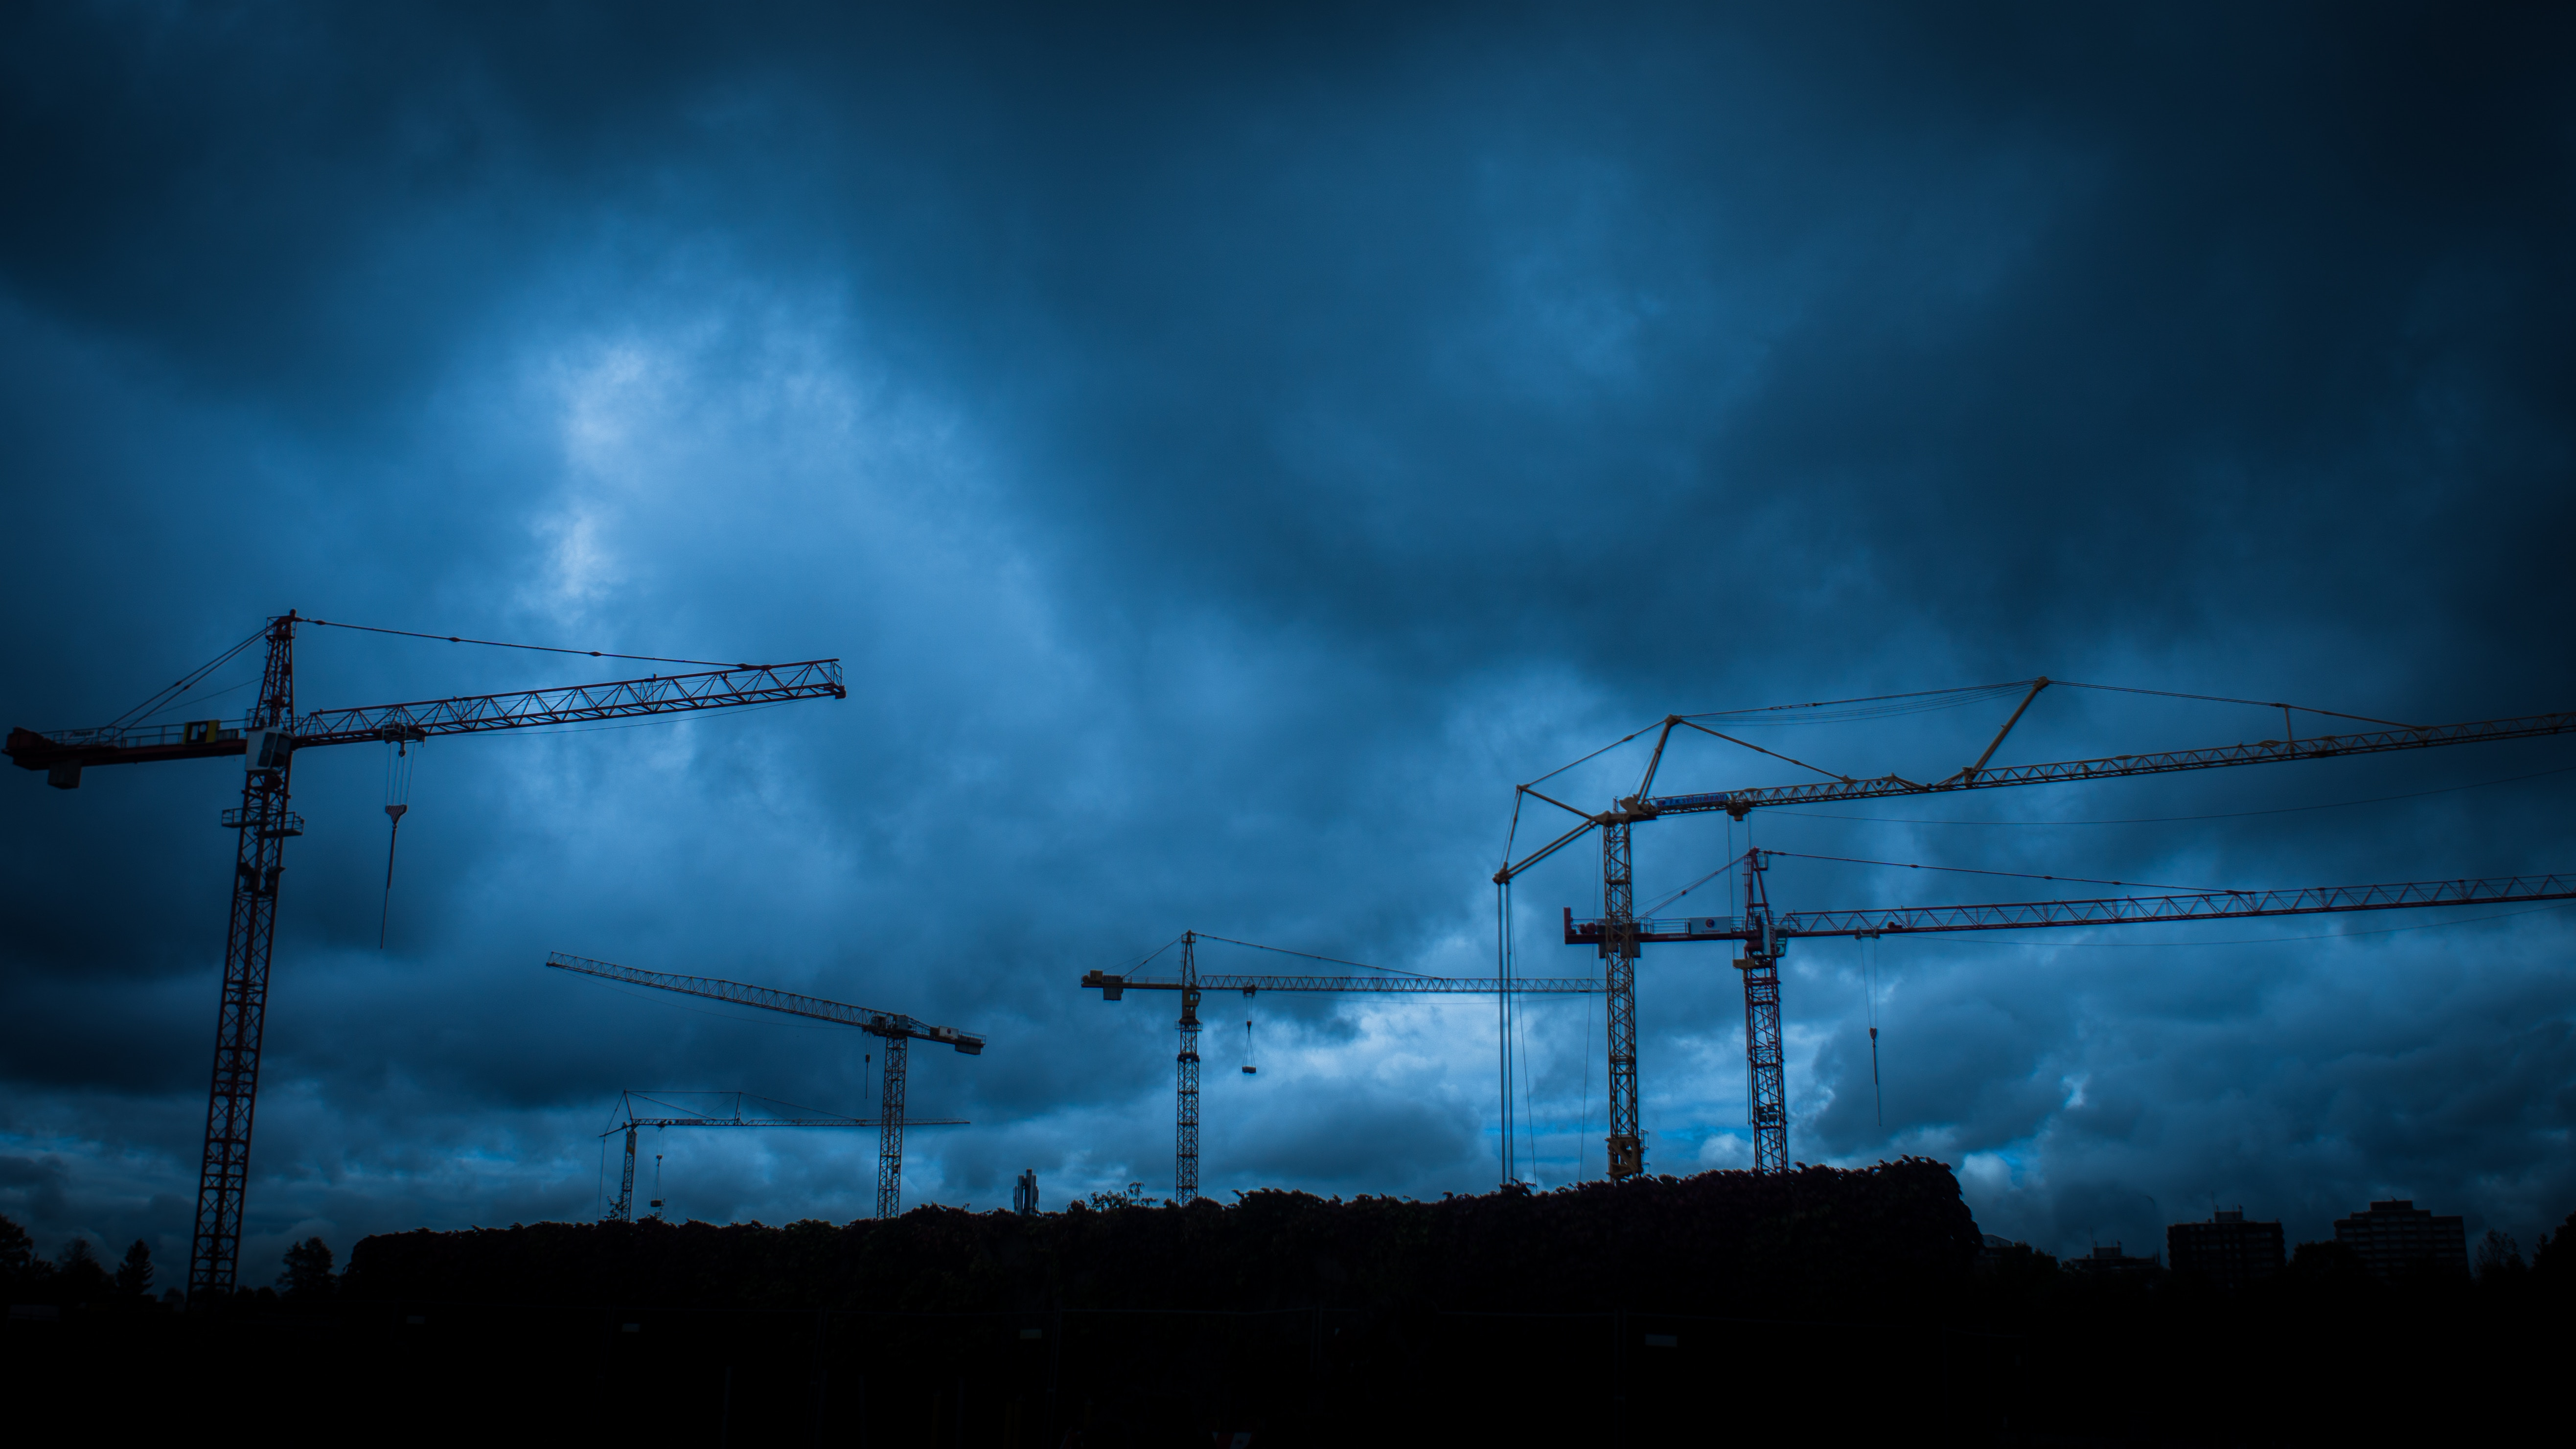 Storm Over Construction